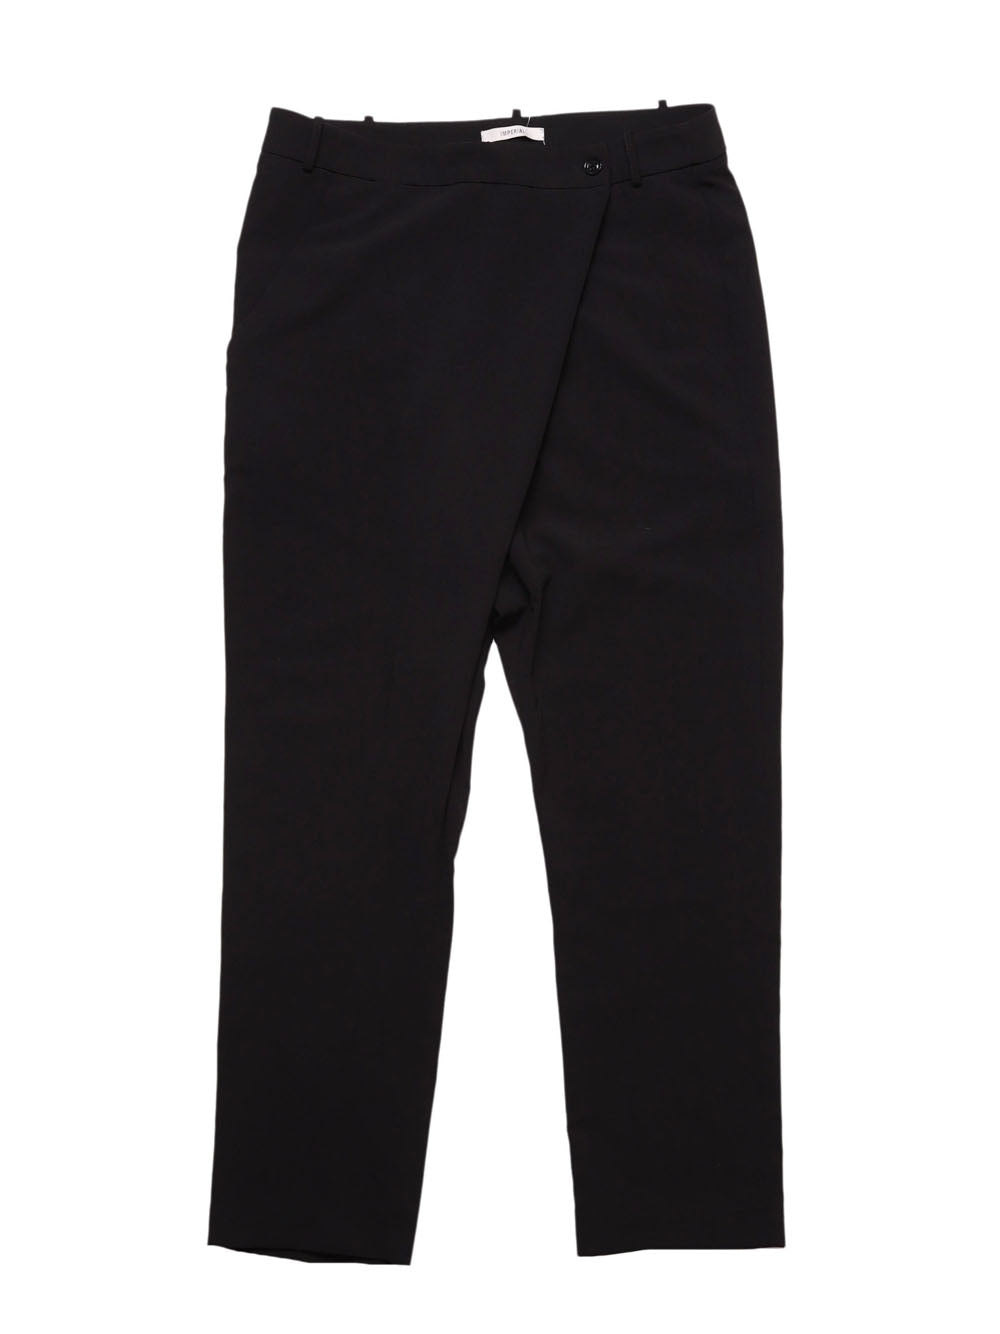 Front photo of Preloved Imperial Black Woman's trousers - size 6/XS